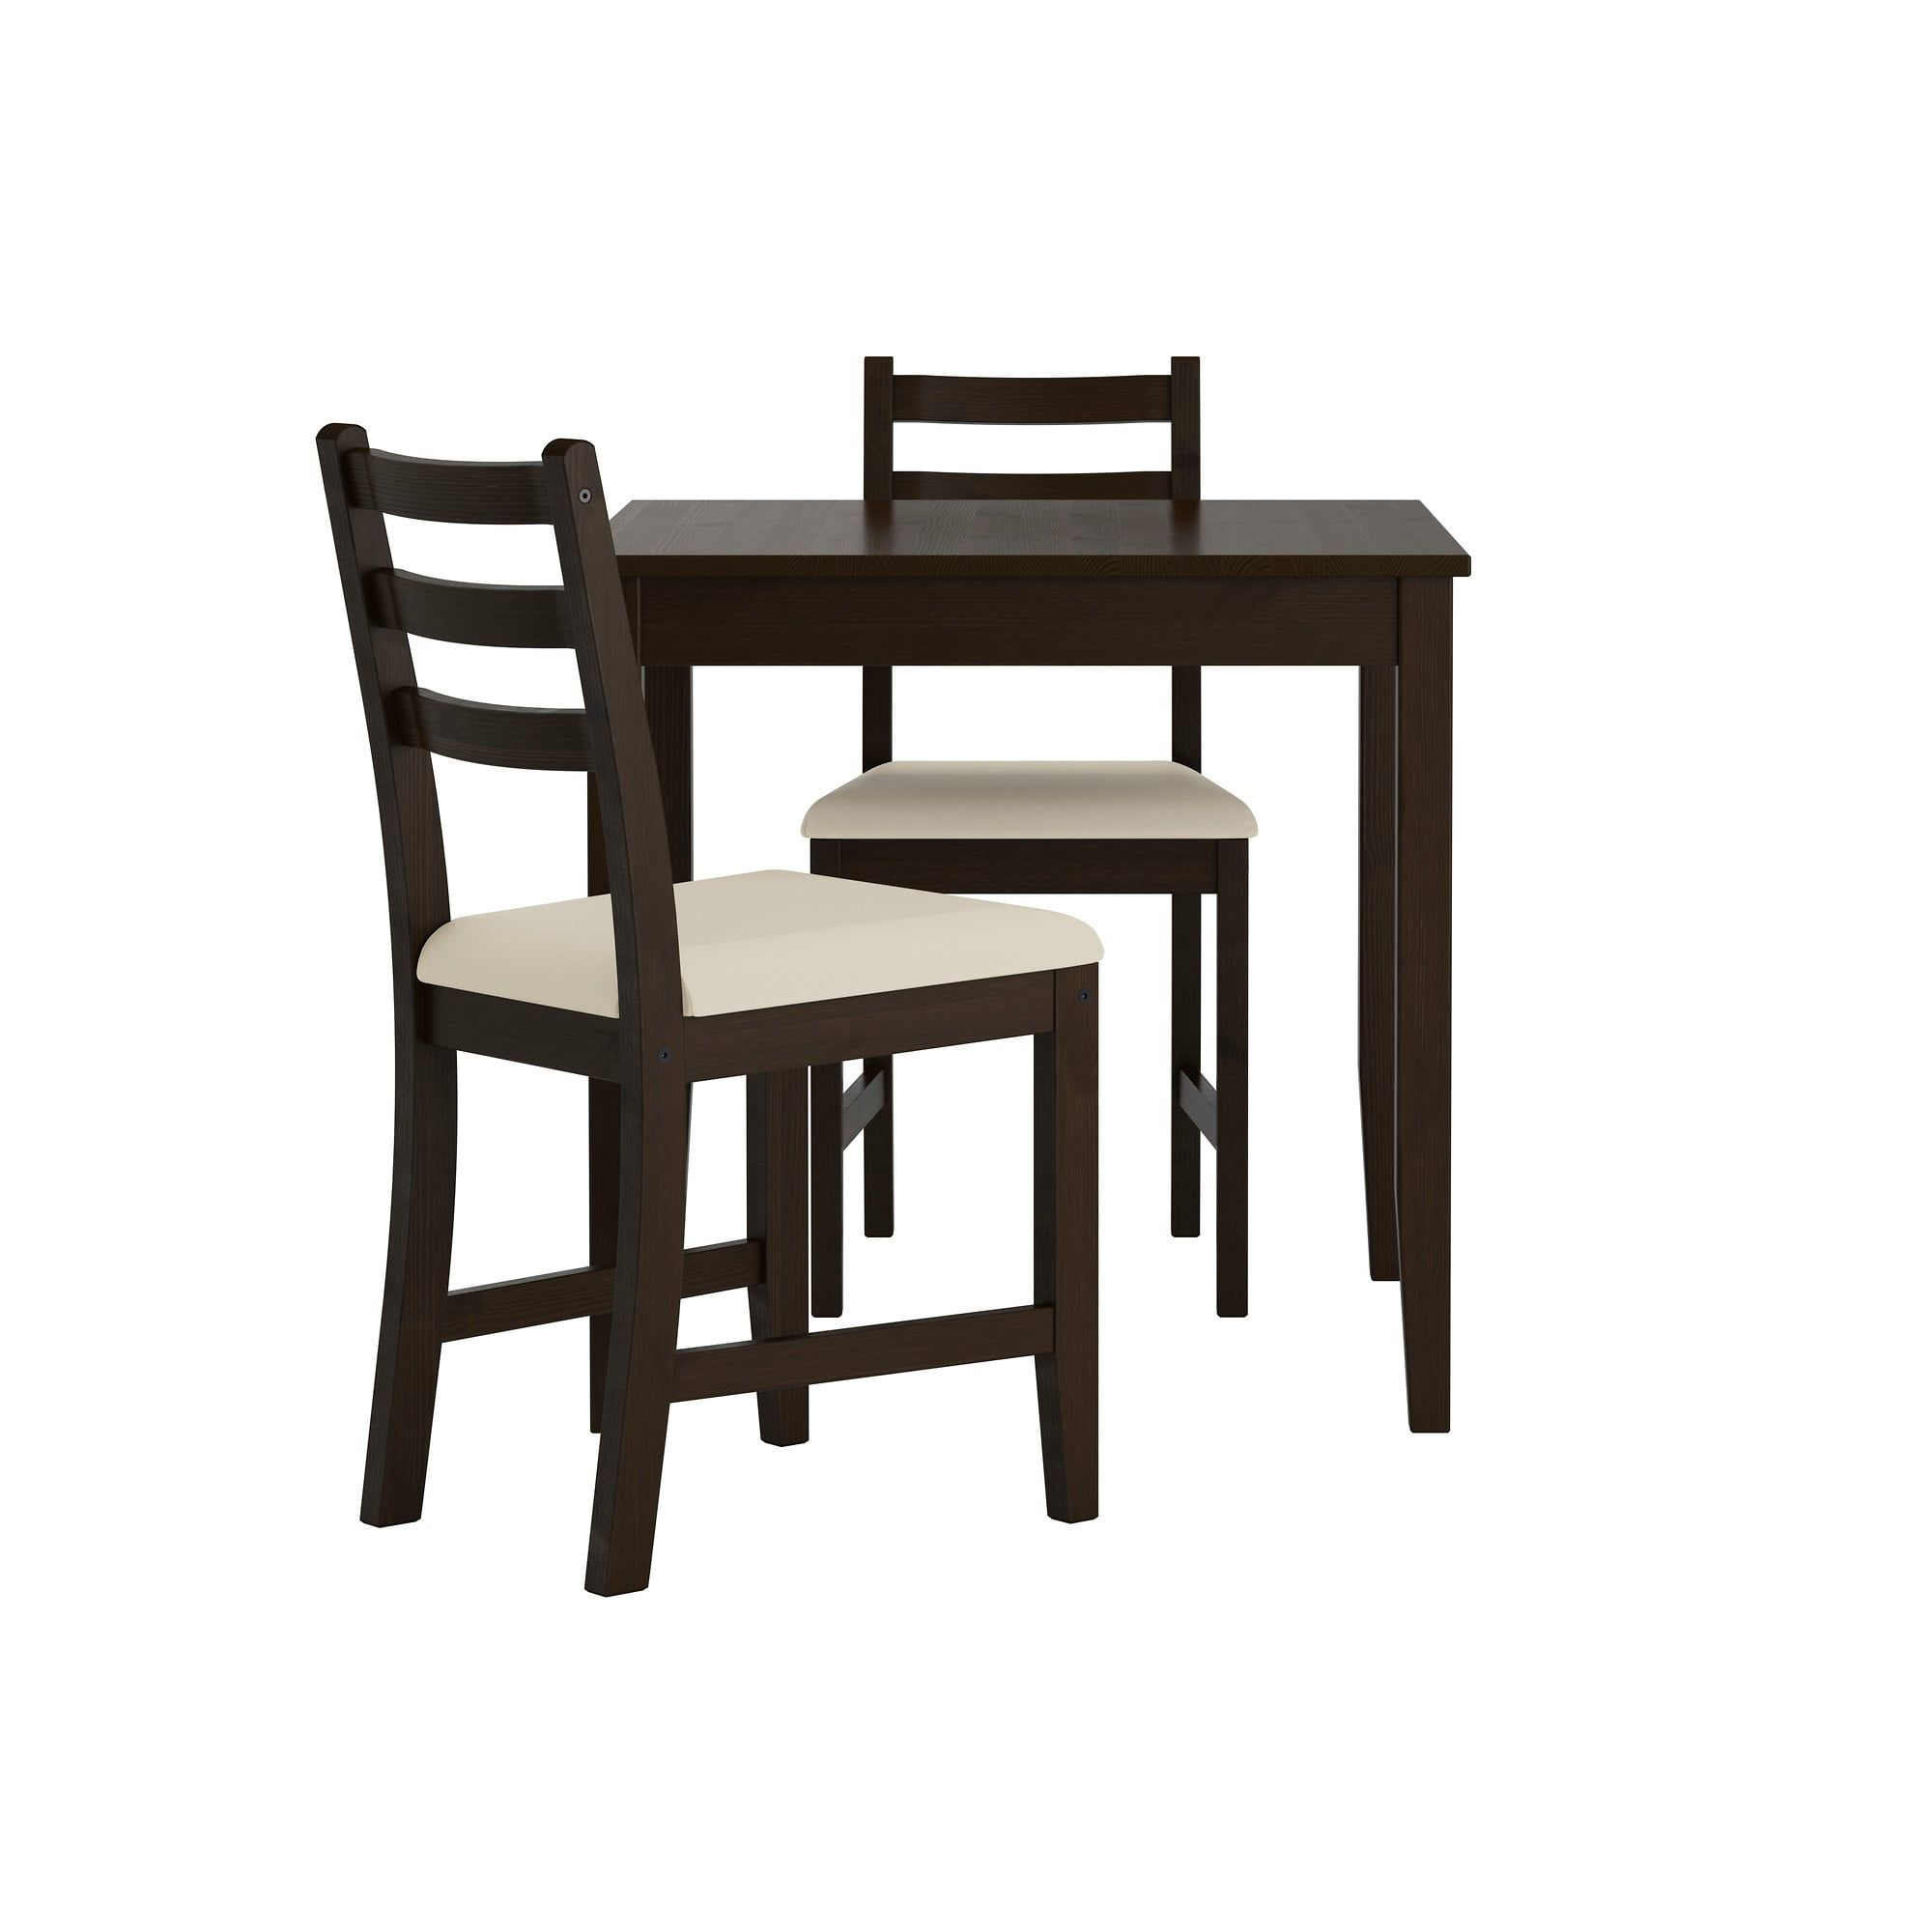 Table And 2 Chairs Black Brown Vittaryd Beige 29 1 8x29 1 8